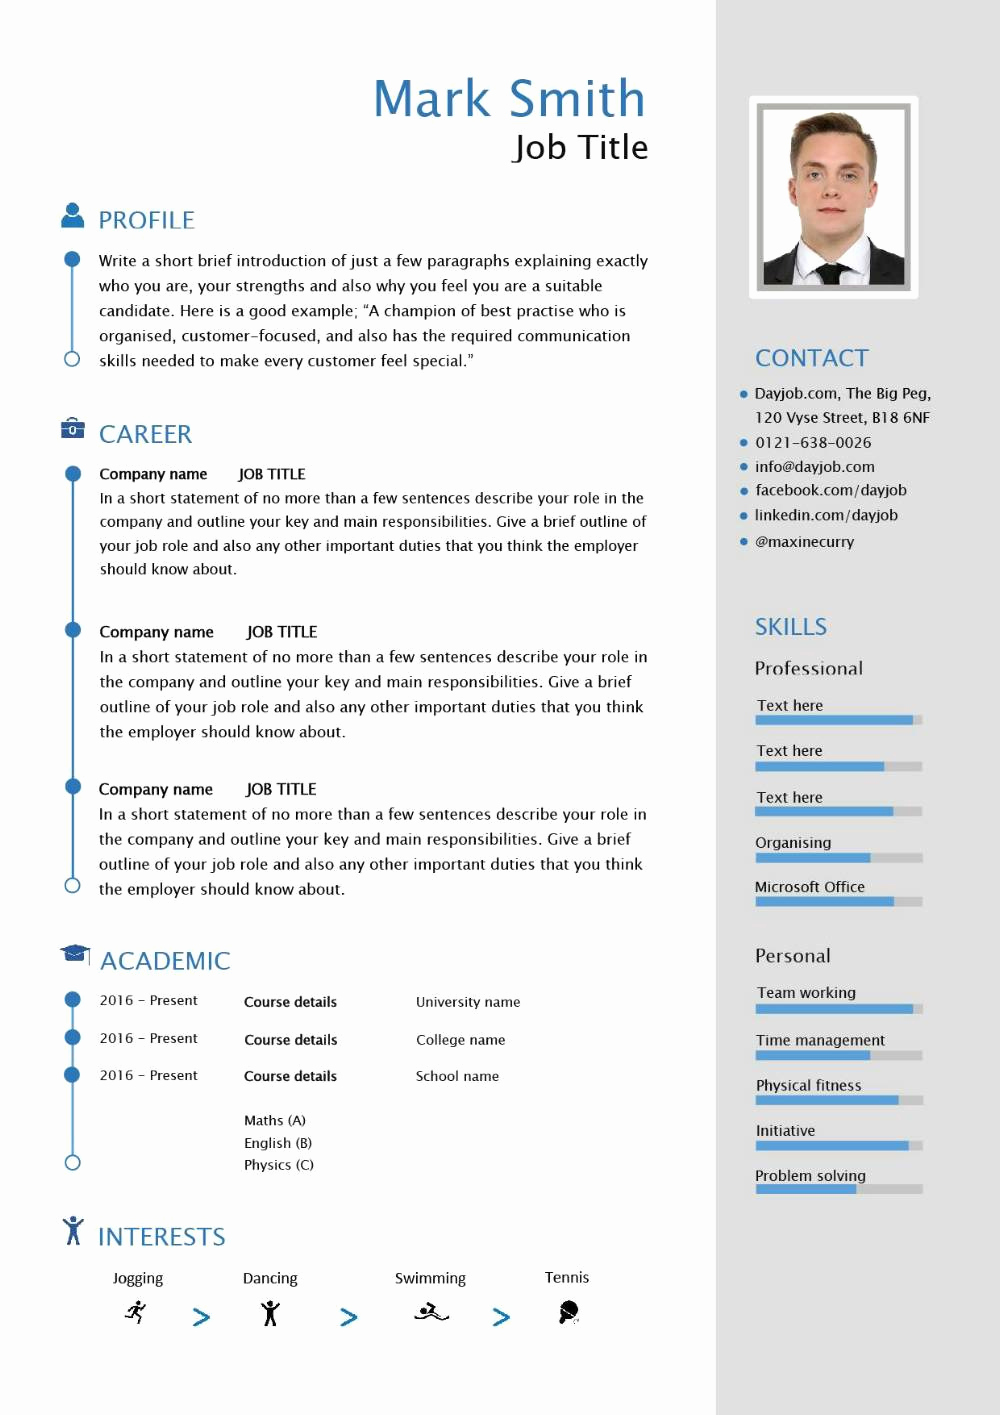 Curriculum Vitae Sample format New Free Able Cv Template Examples Career Advice How